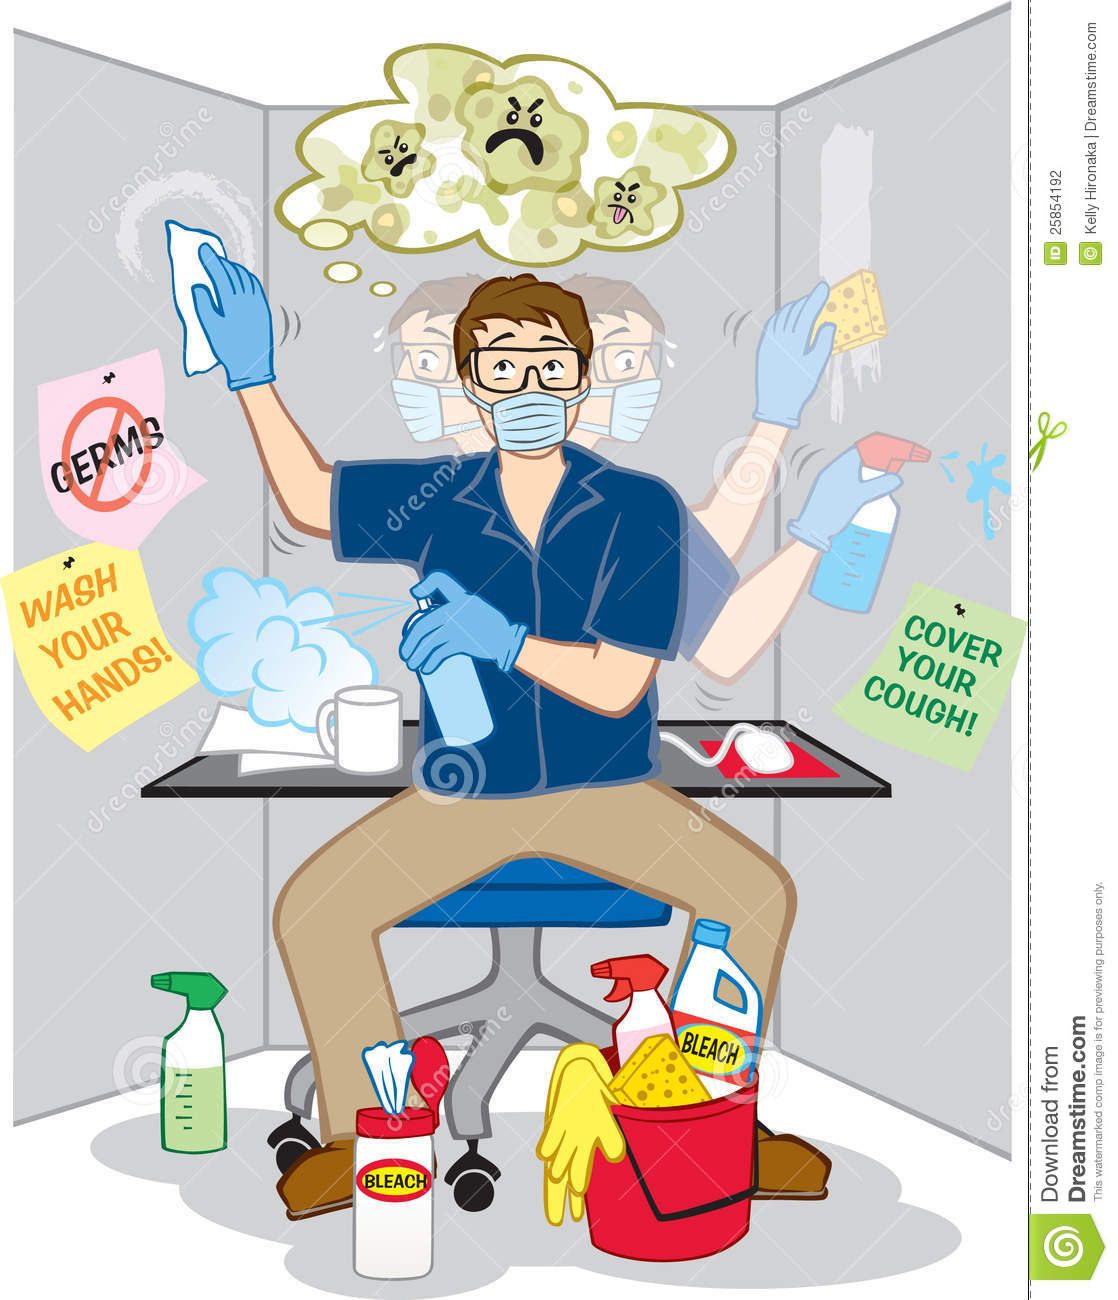 About germs at work and is frantically disinfecting everything